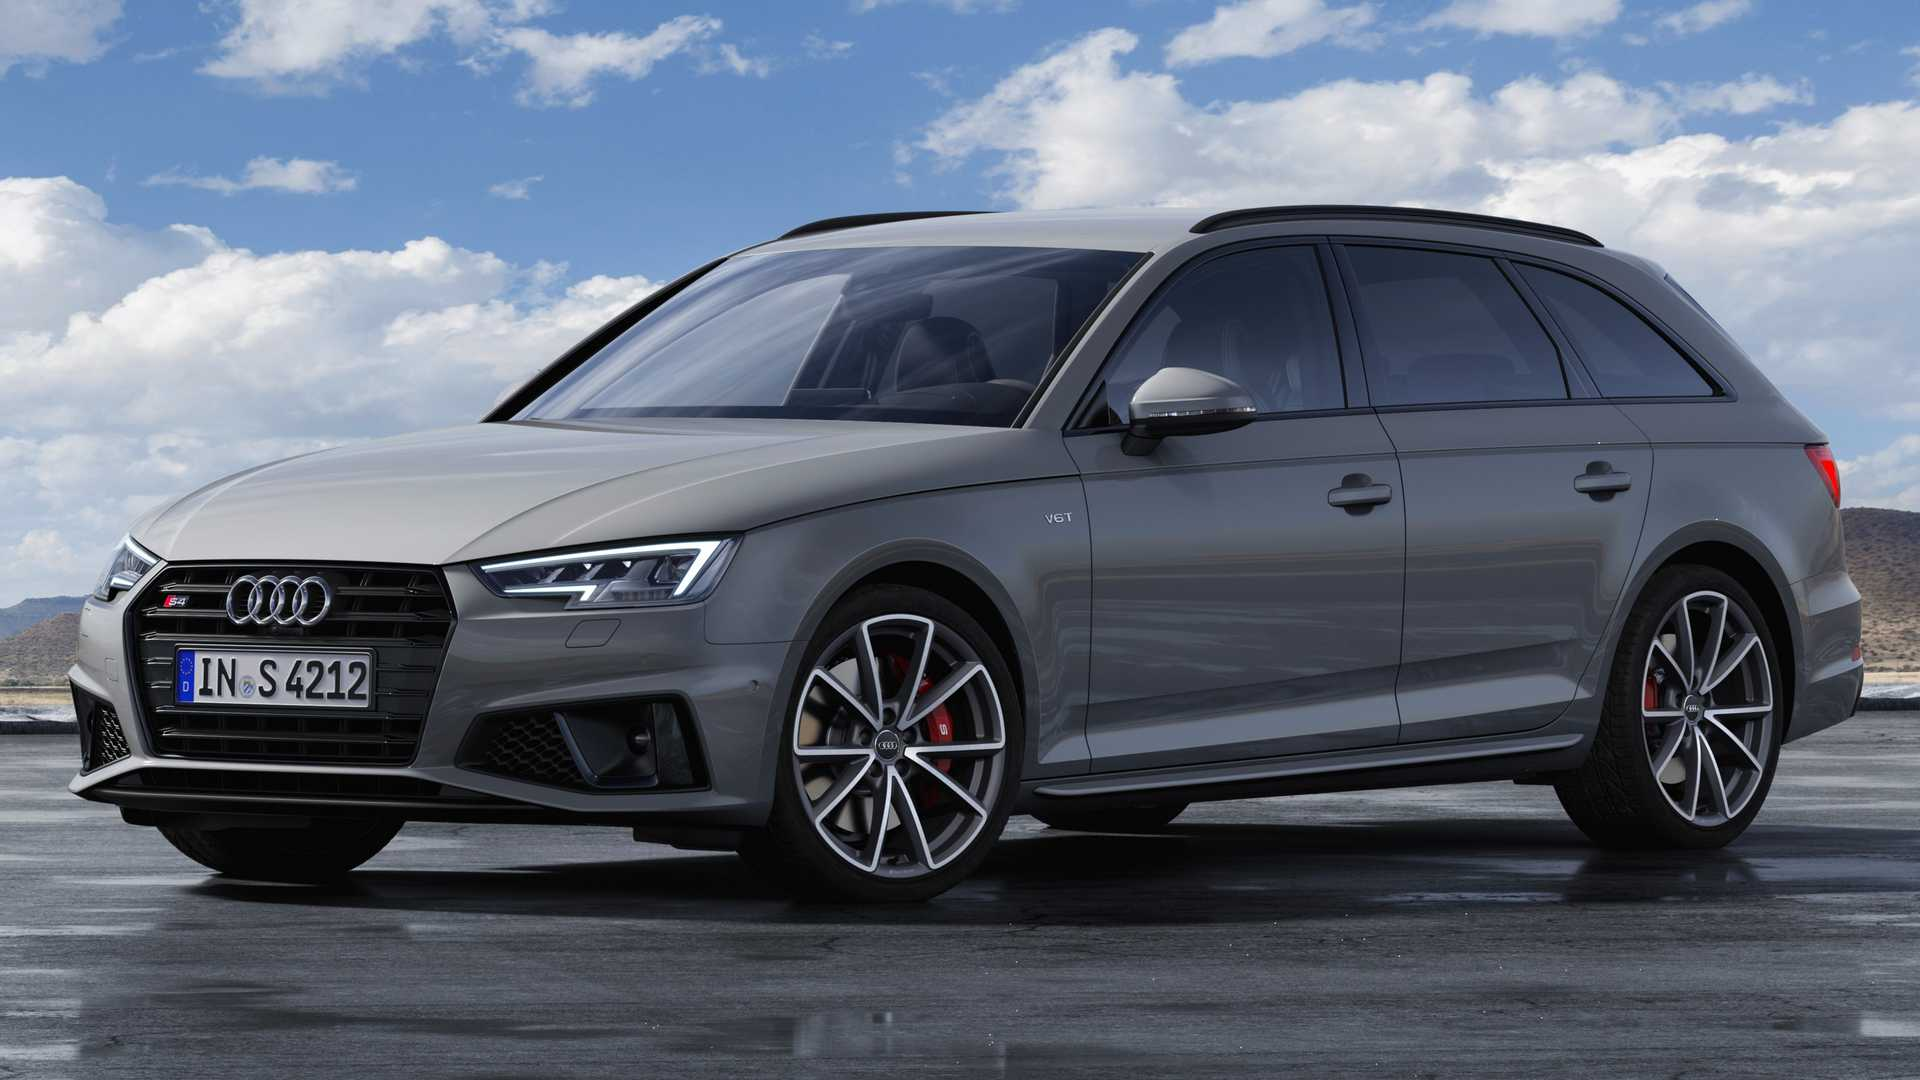 48 All New 2020 Audi S4 Price Design And Review